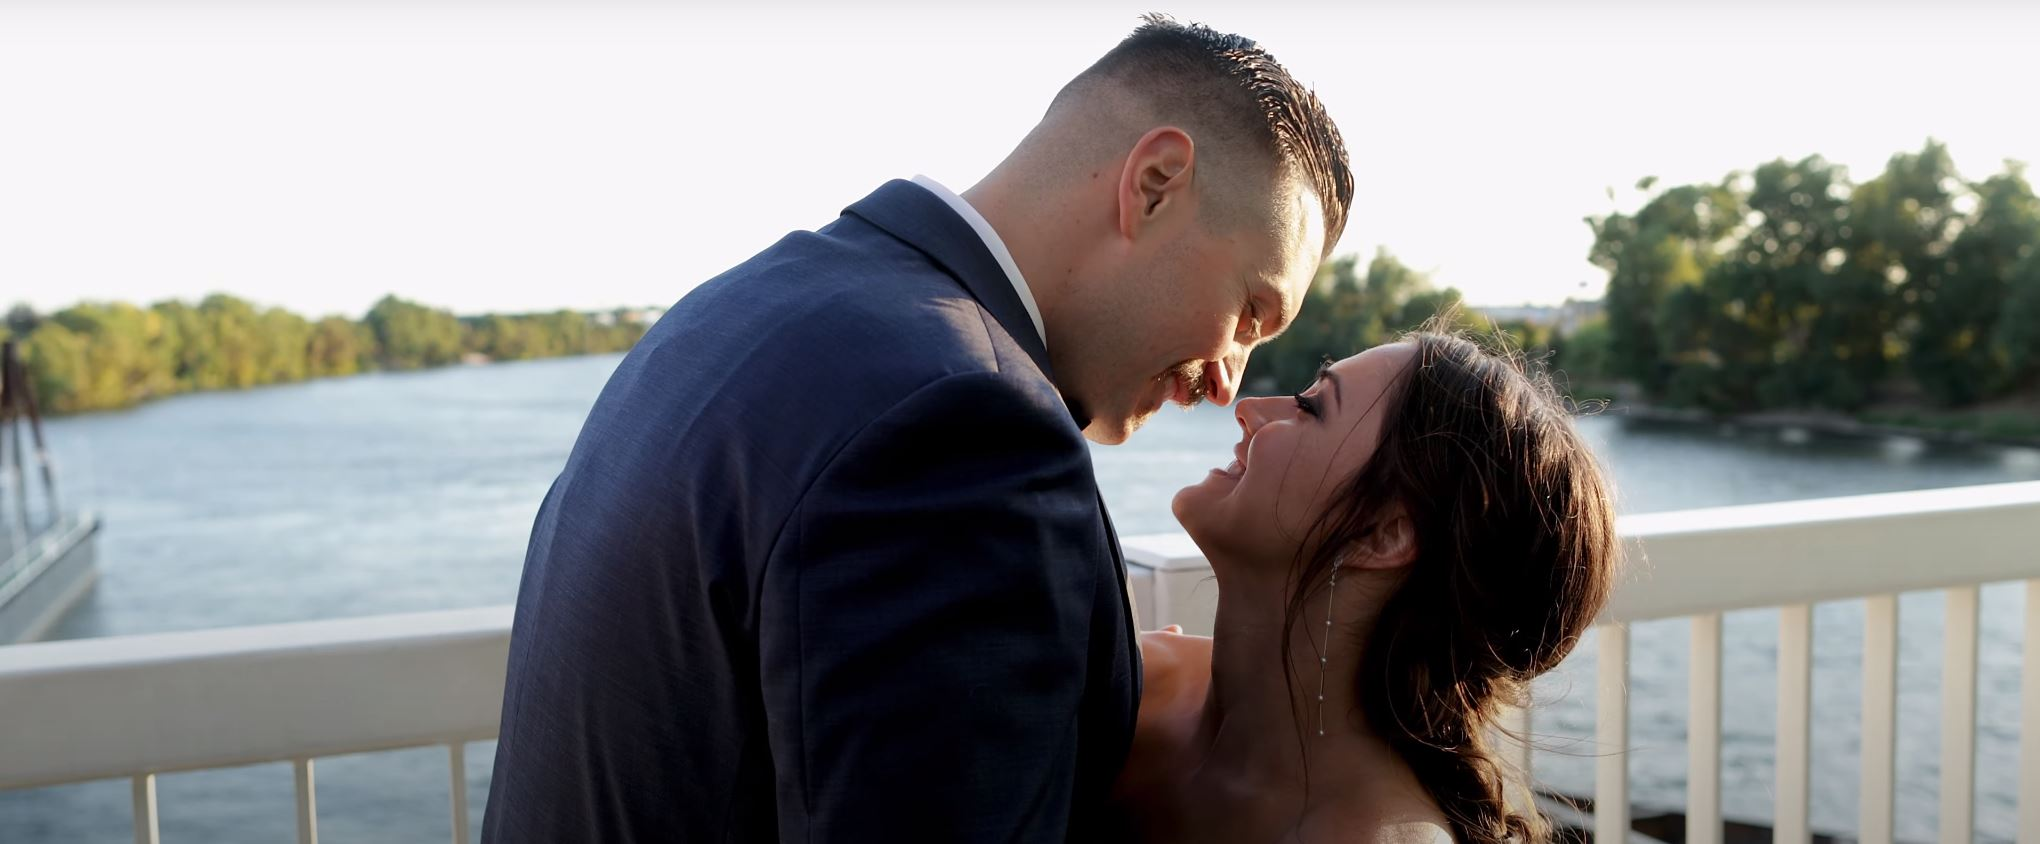 Bride and Groom embracing on the Tower Bridge in Sacramento, Ca